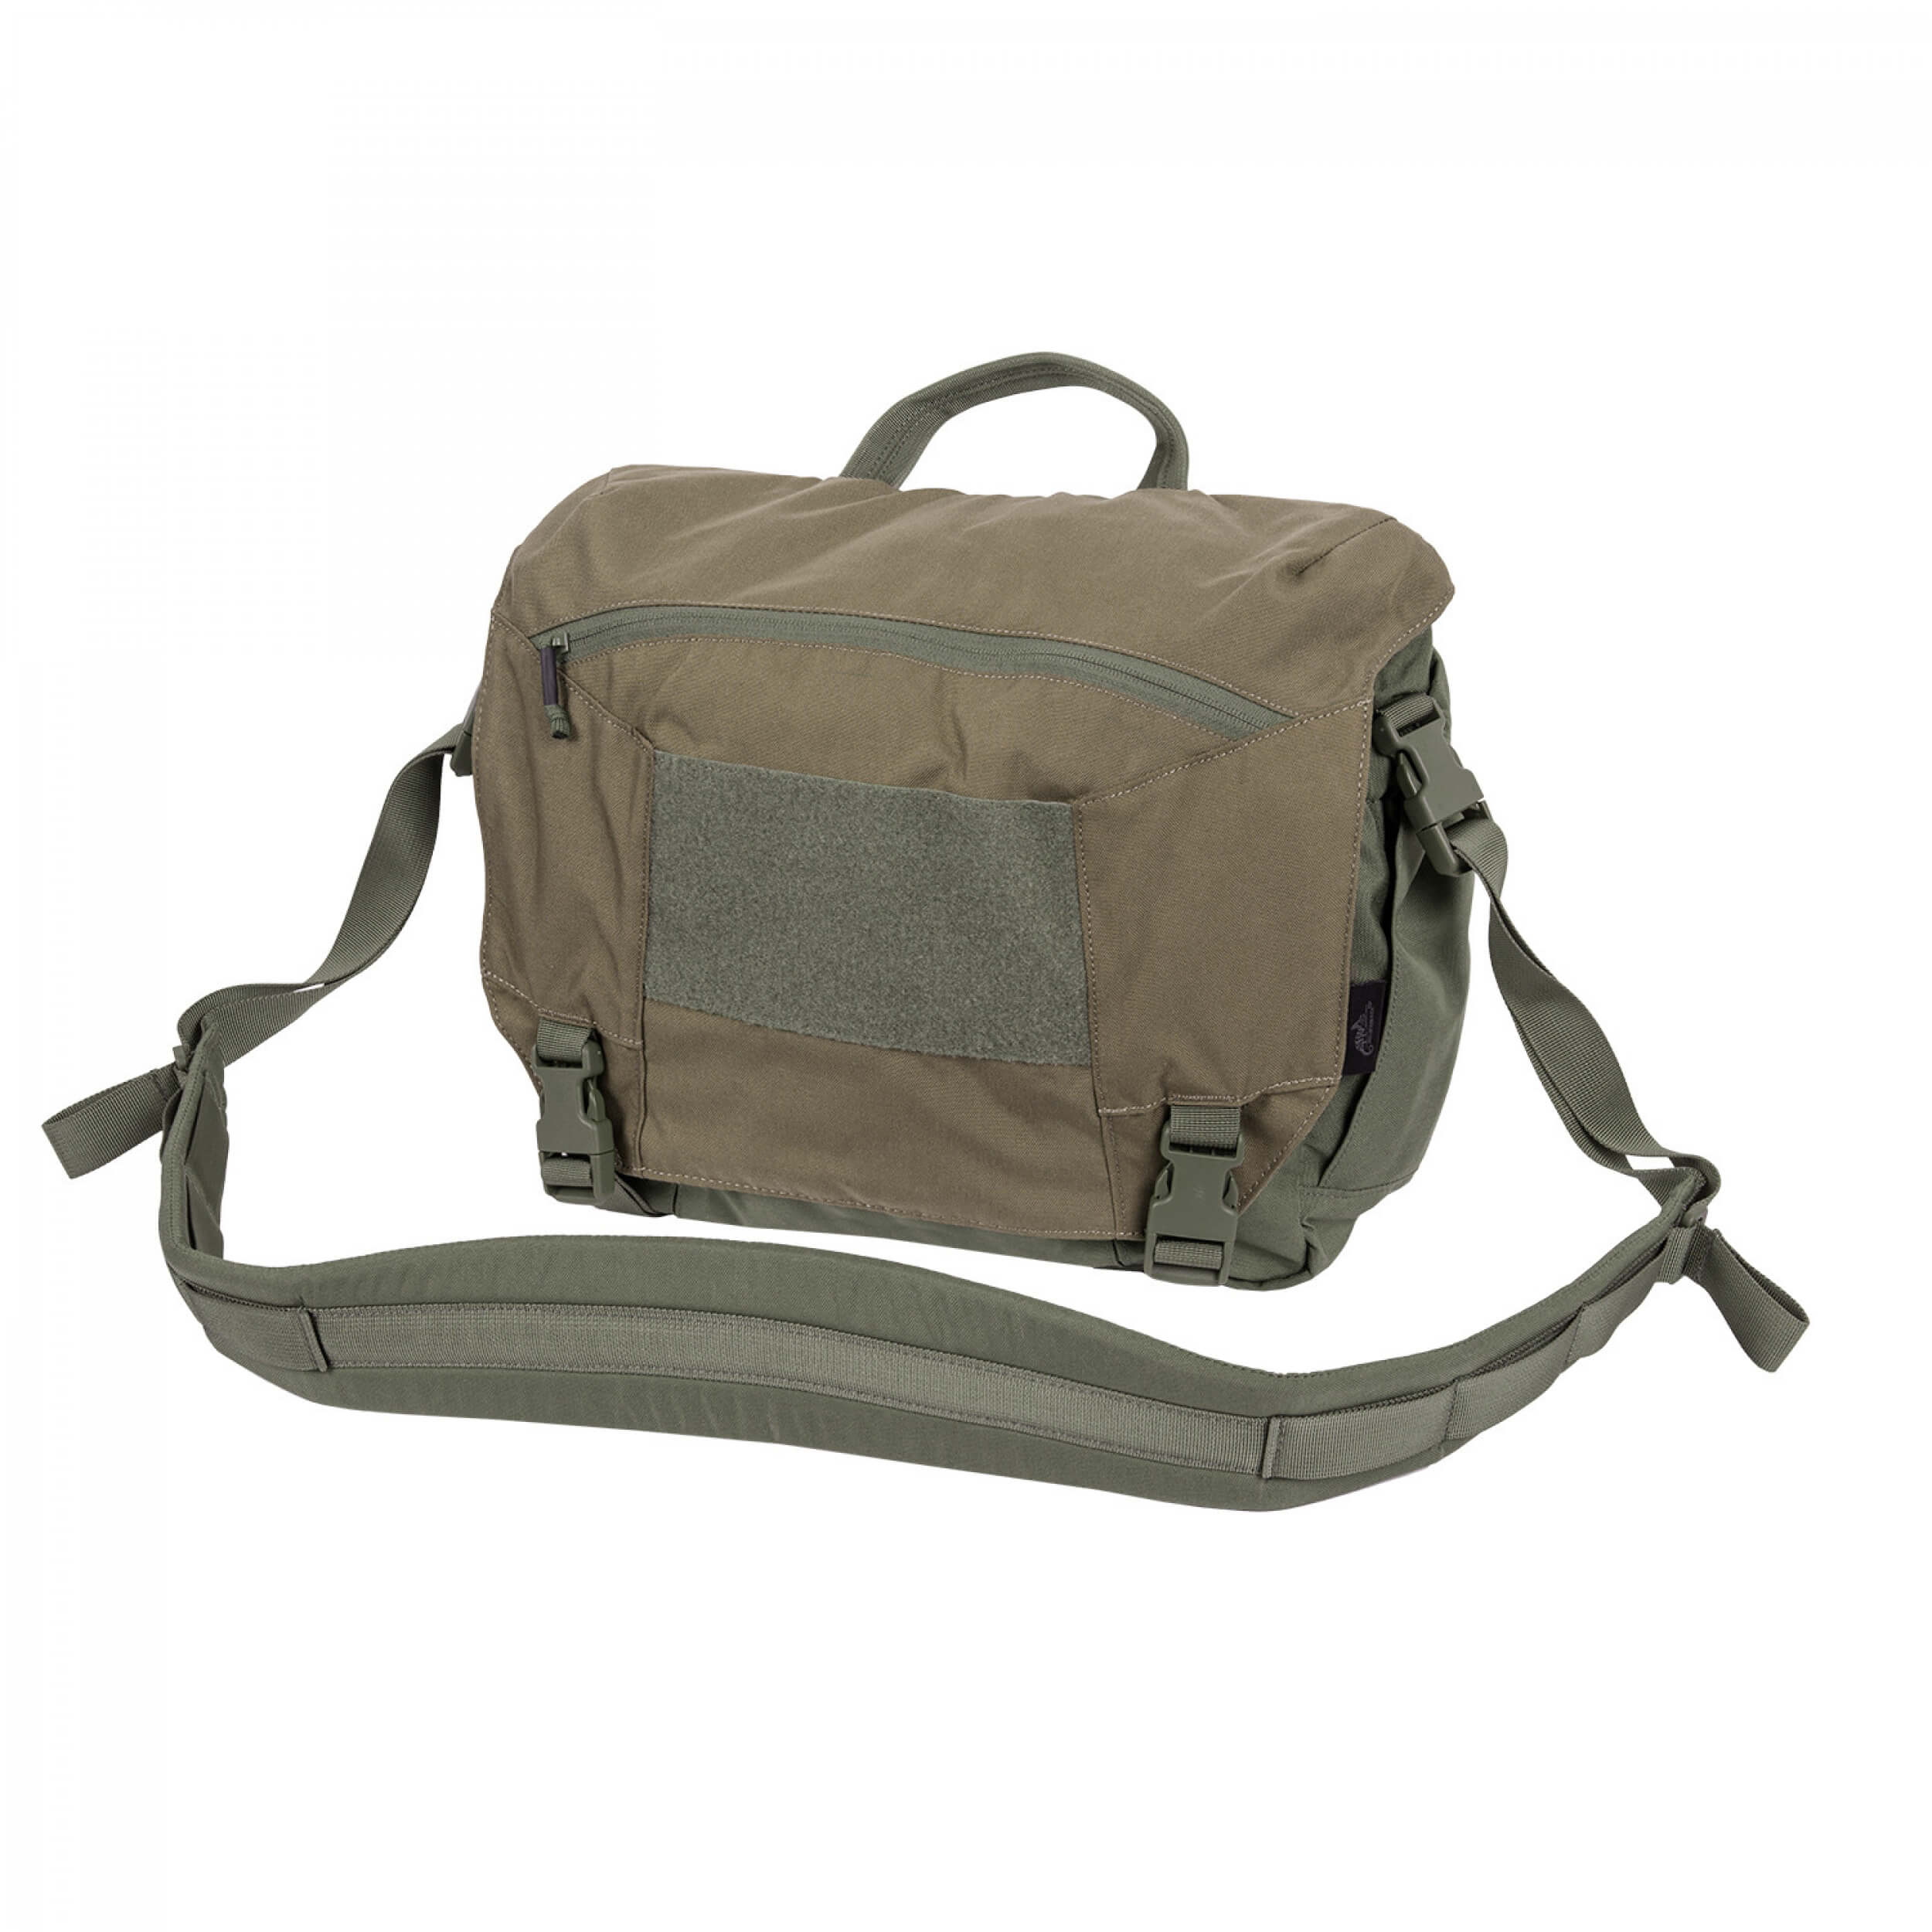 Helikon-Tex Urban COURIER Bag Medium -Cordura- Coyote / Adaptive Green A